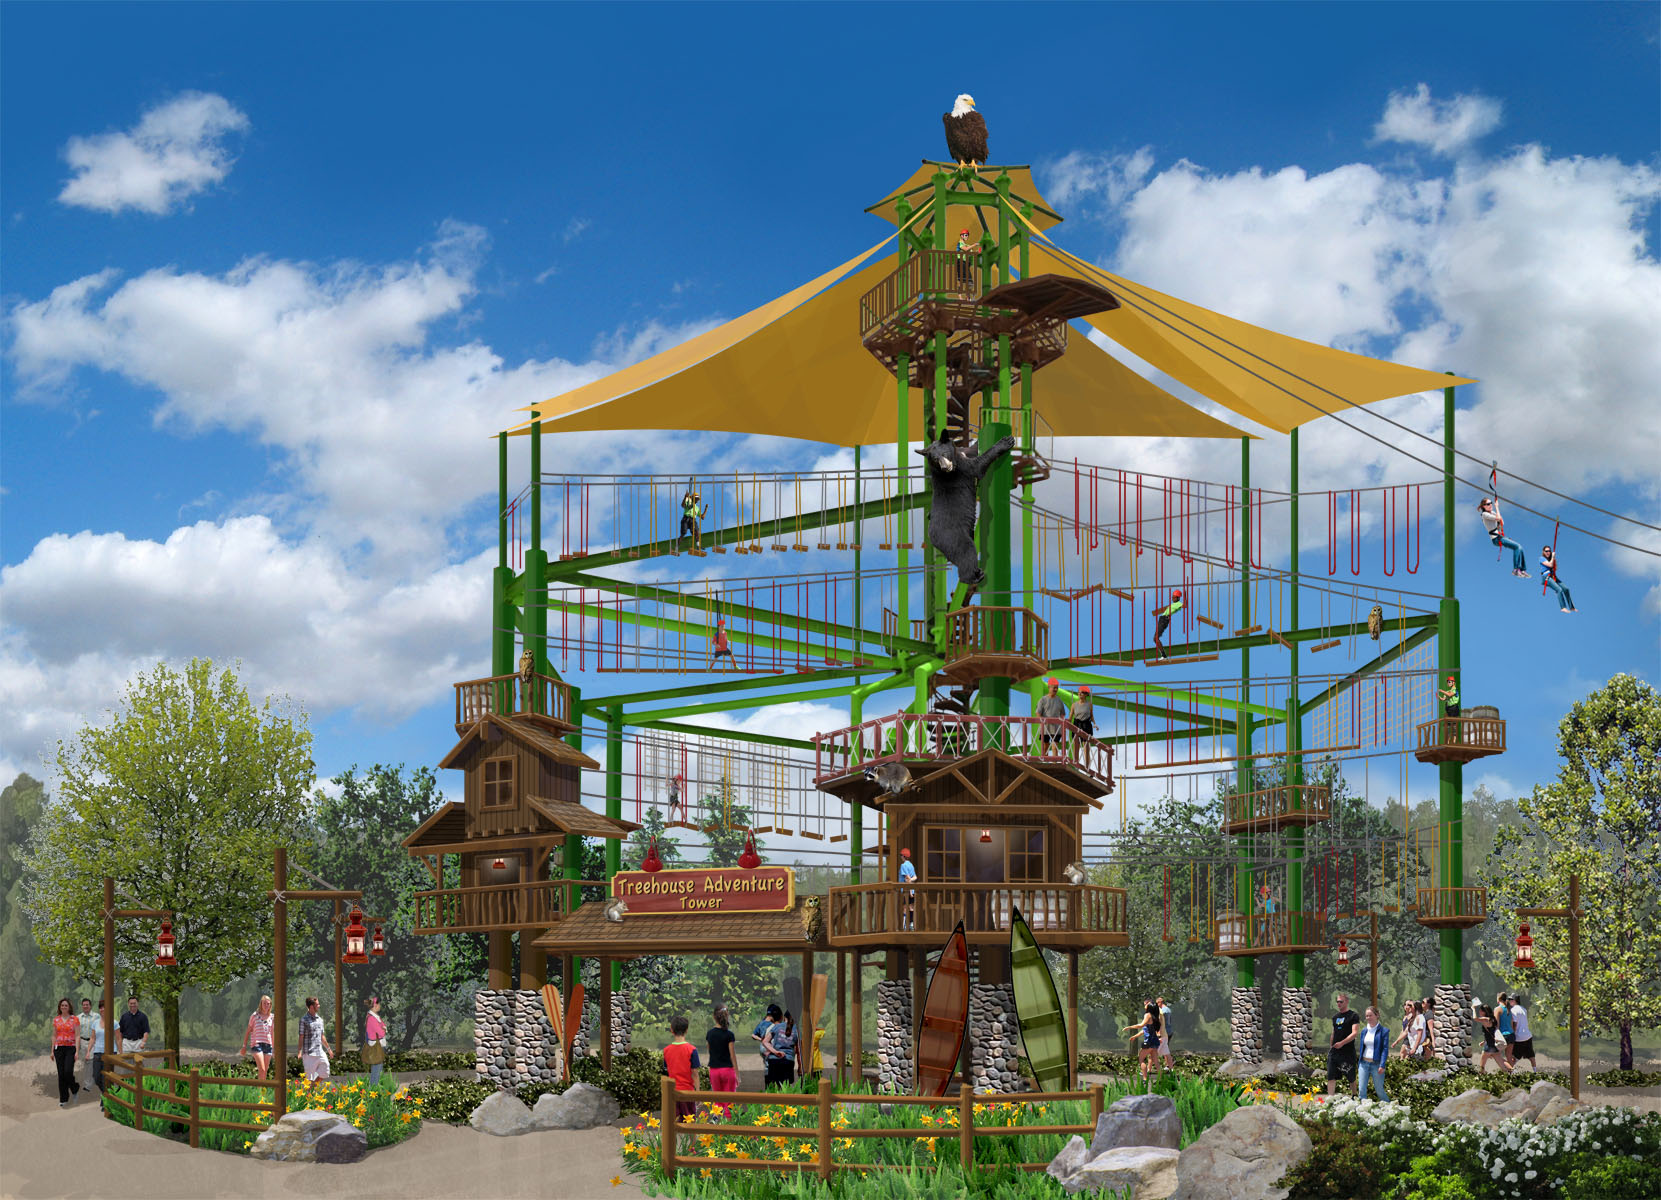 Treehouse Adventure Tower R&R Creative Amusement Designs Anaheim, CA